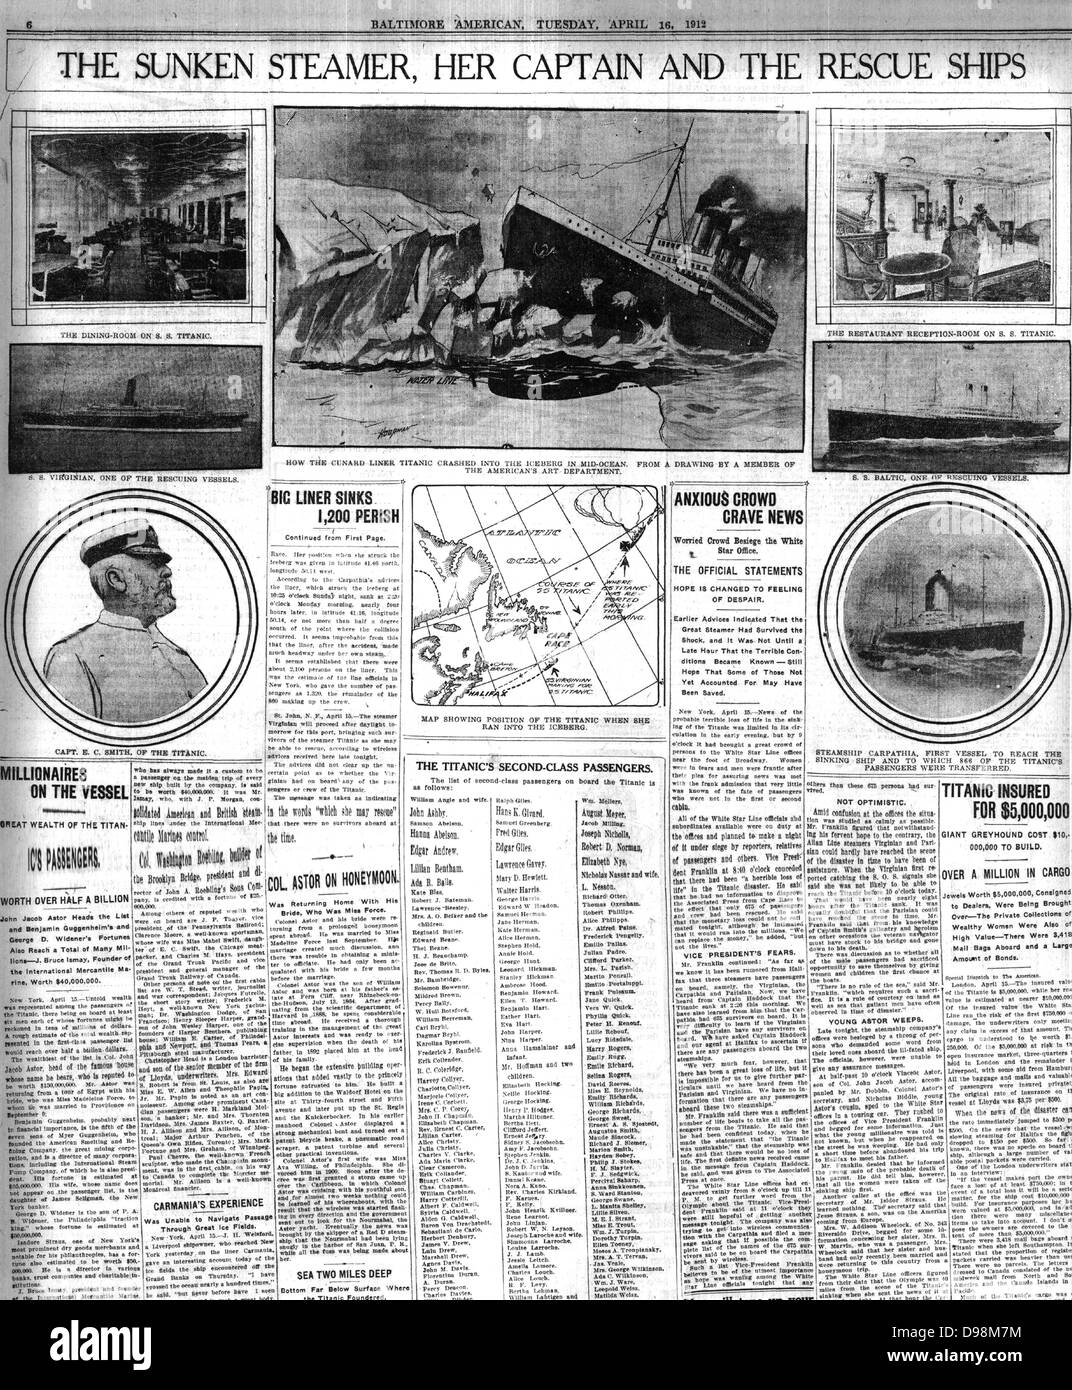 newspaper reporting of the sinking of the Titanic in 1912 - Stock Image